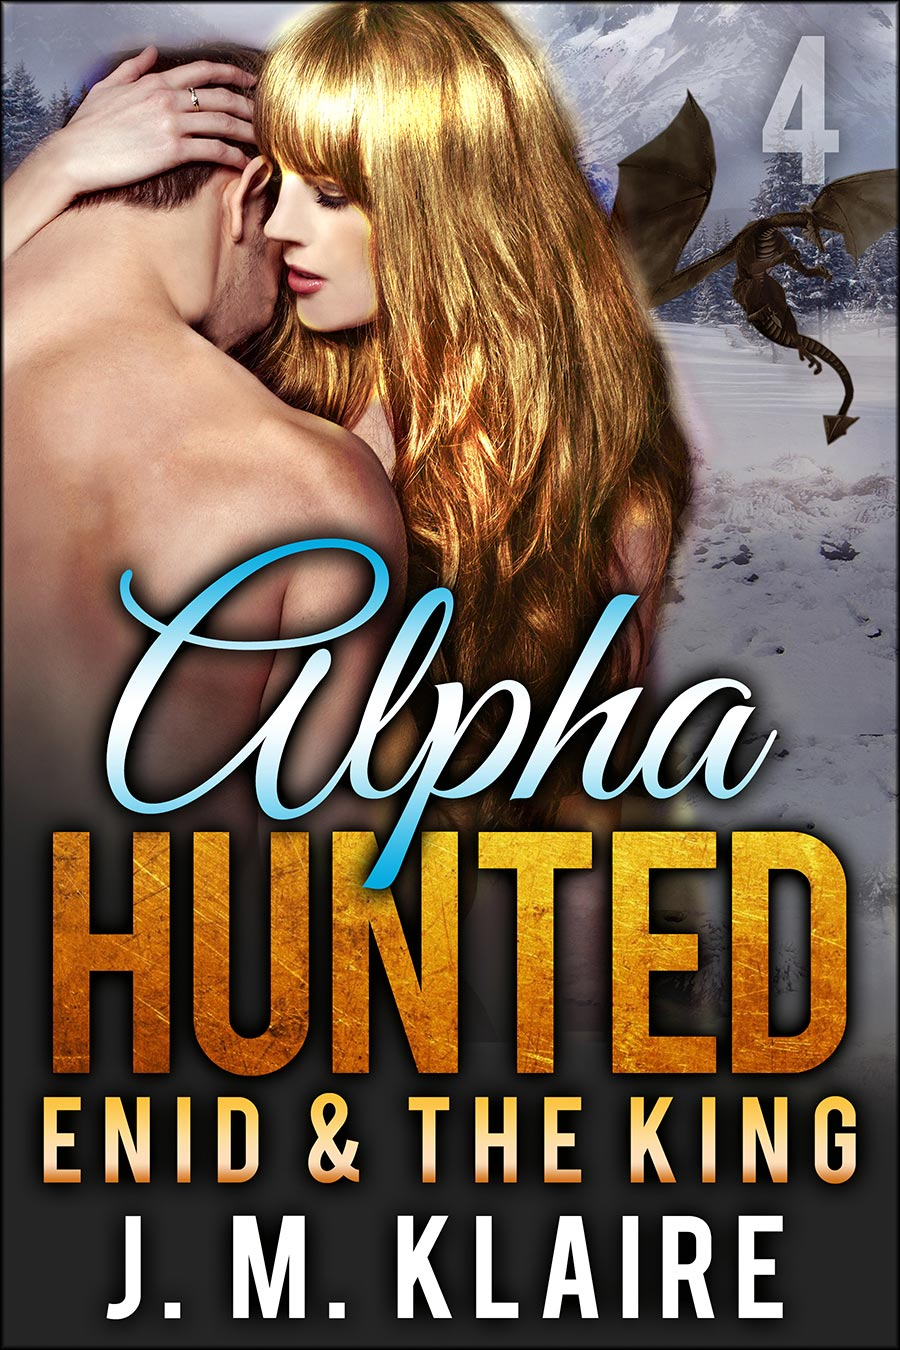 Alpha-Hunted-4---with-page-number.jpg